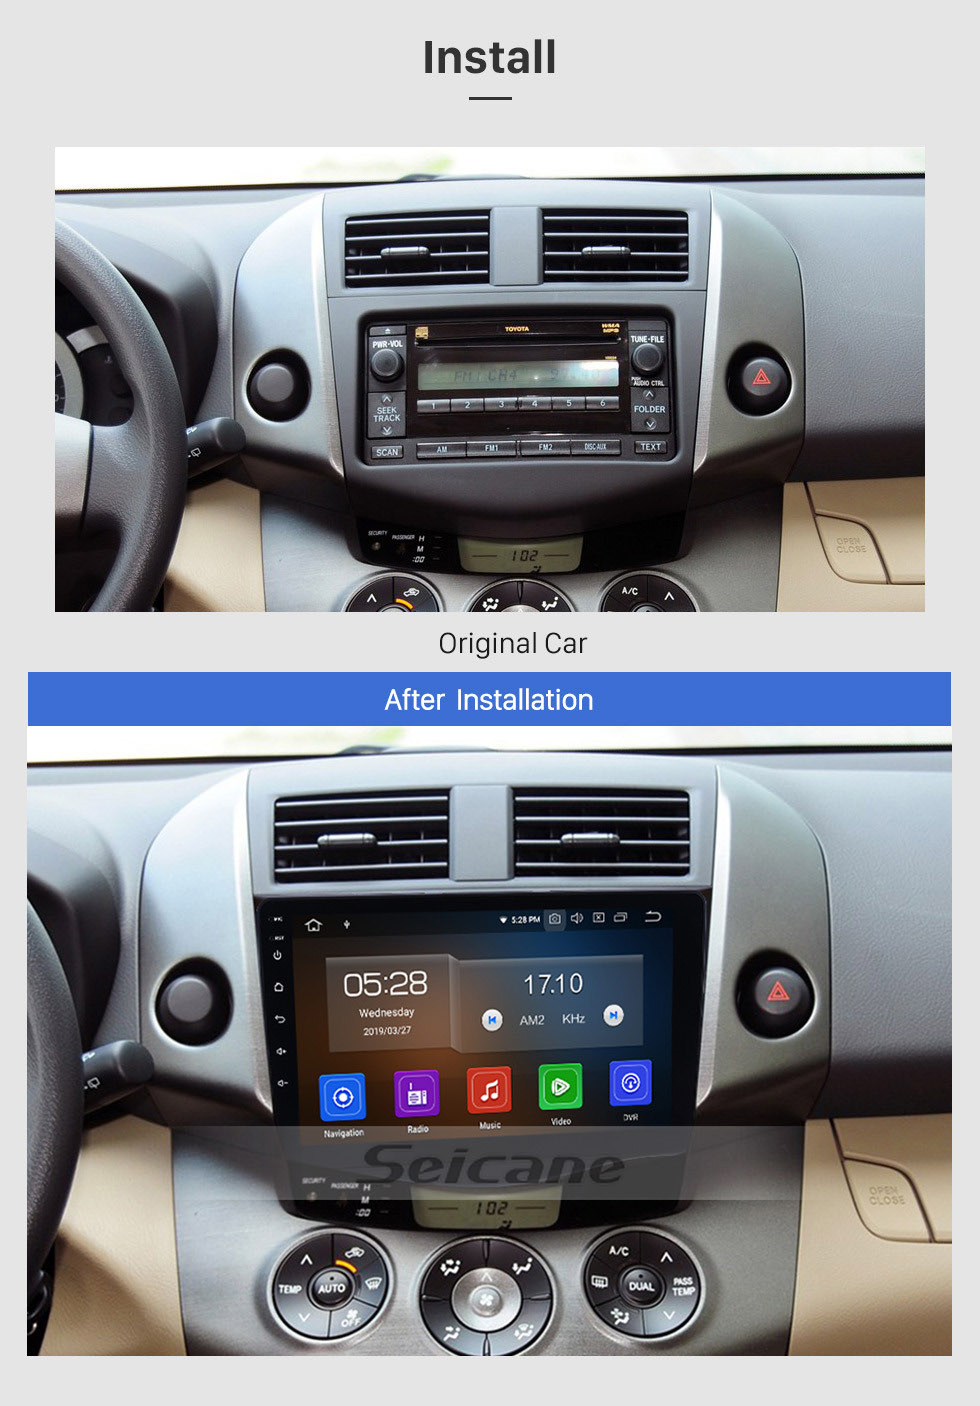 Seicane 9 inch Touchscreen Radio for 2007-2011 Toyota RAV4 Android 10.0 GPS Navigation System Bluetooth OBDII DVR Backup Camera WIFI Mirror link 1080P video